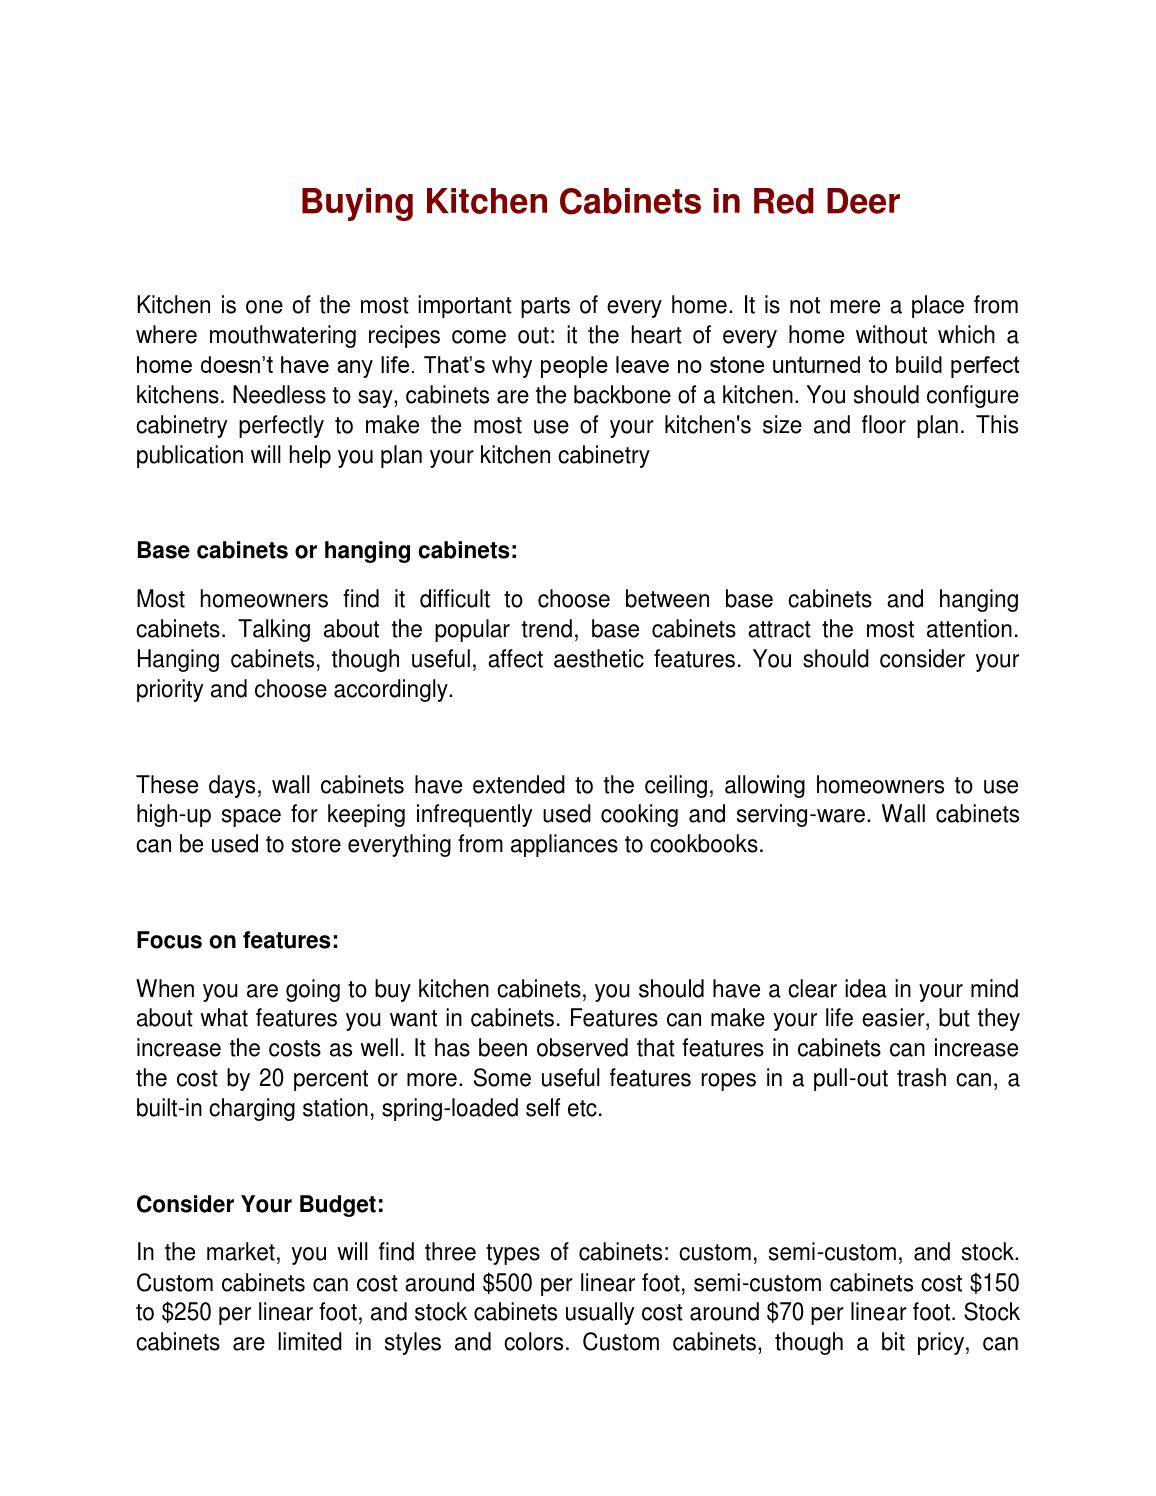 Used Kitchen Cabinets Red Deer Kitchen Cabinets In Red Deer By Kate William Issuu